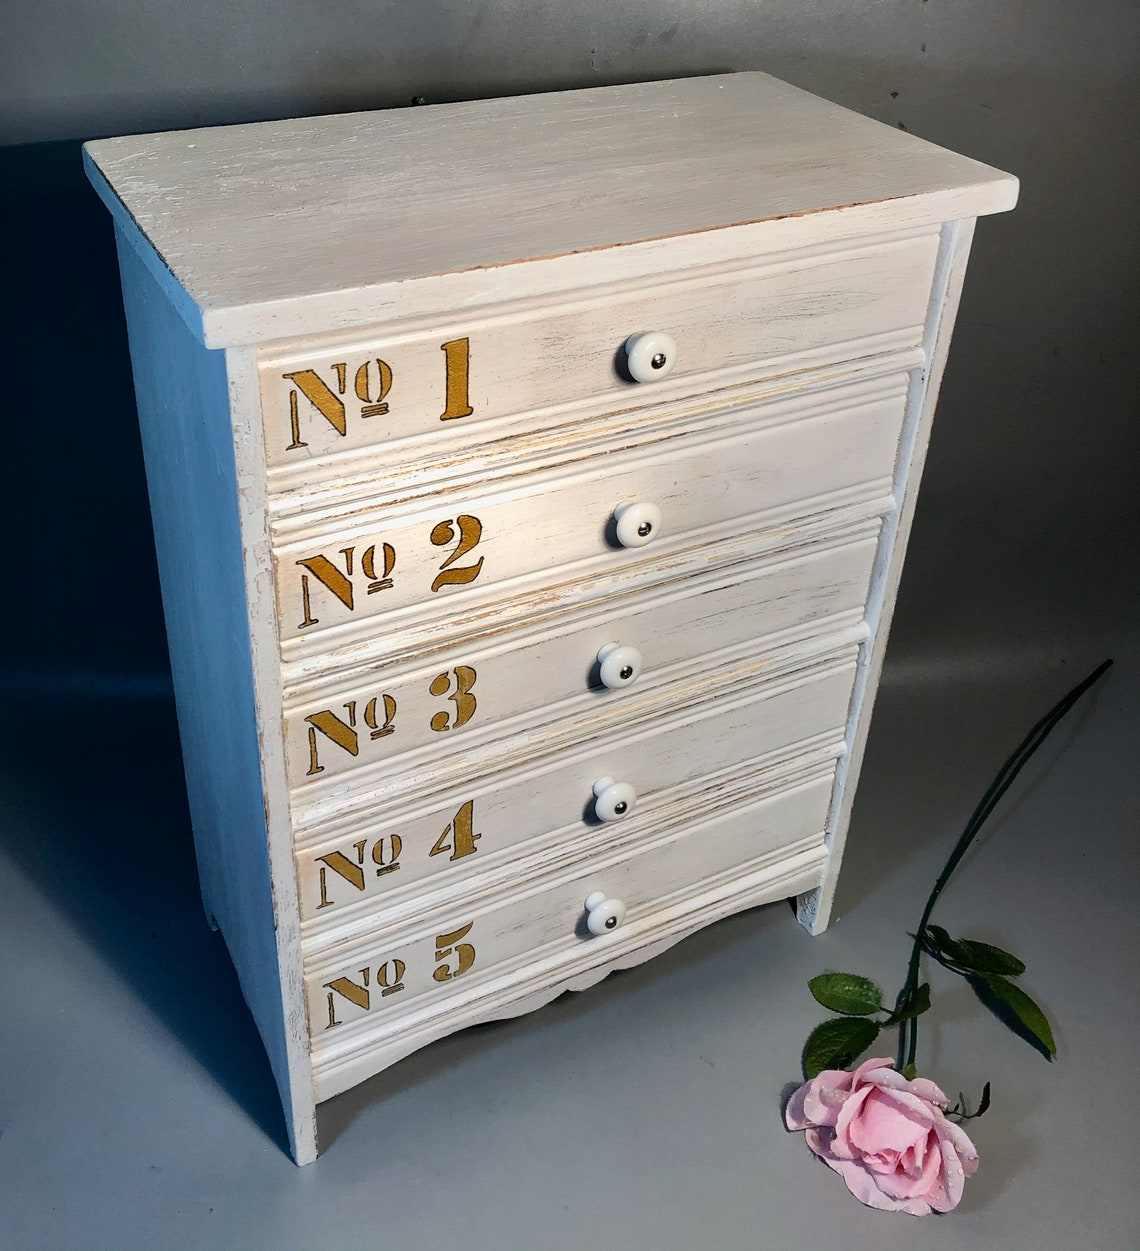 "Small Rustic Chest Of 5 Drawers 21"" High Hand Painted w/Gold Numbers Shabby Chic Farmhouse"